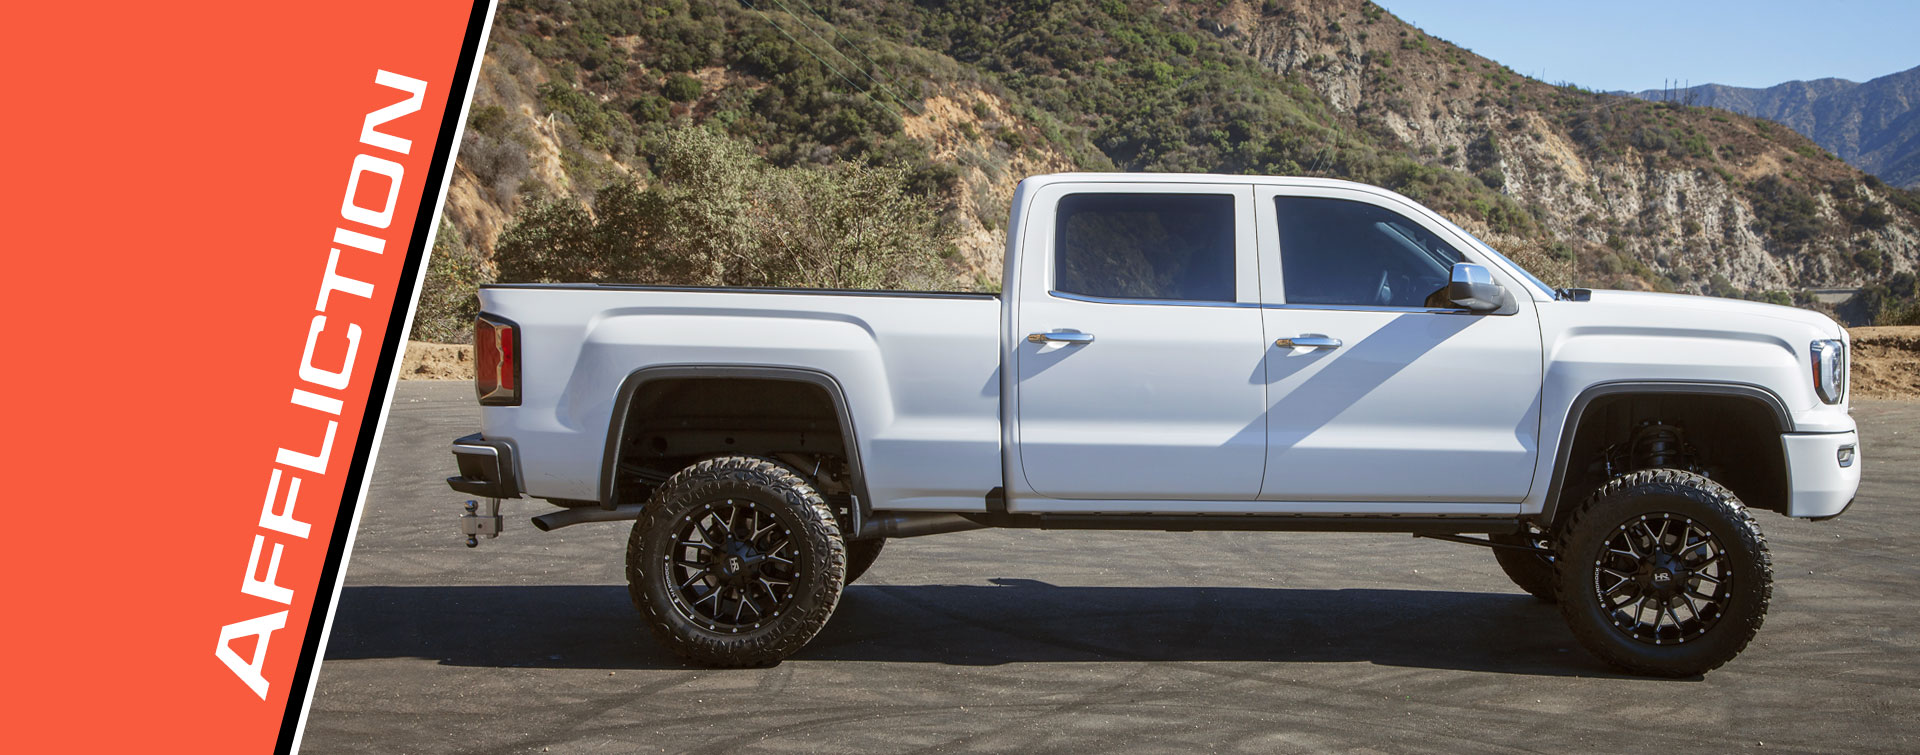 Hardrock 20x10 Affliction Wheels on a White GMC Sierra